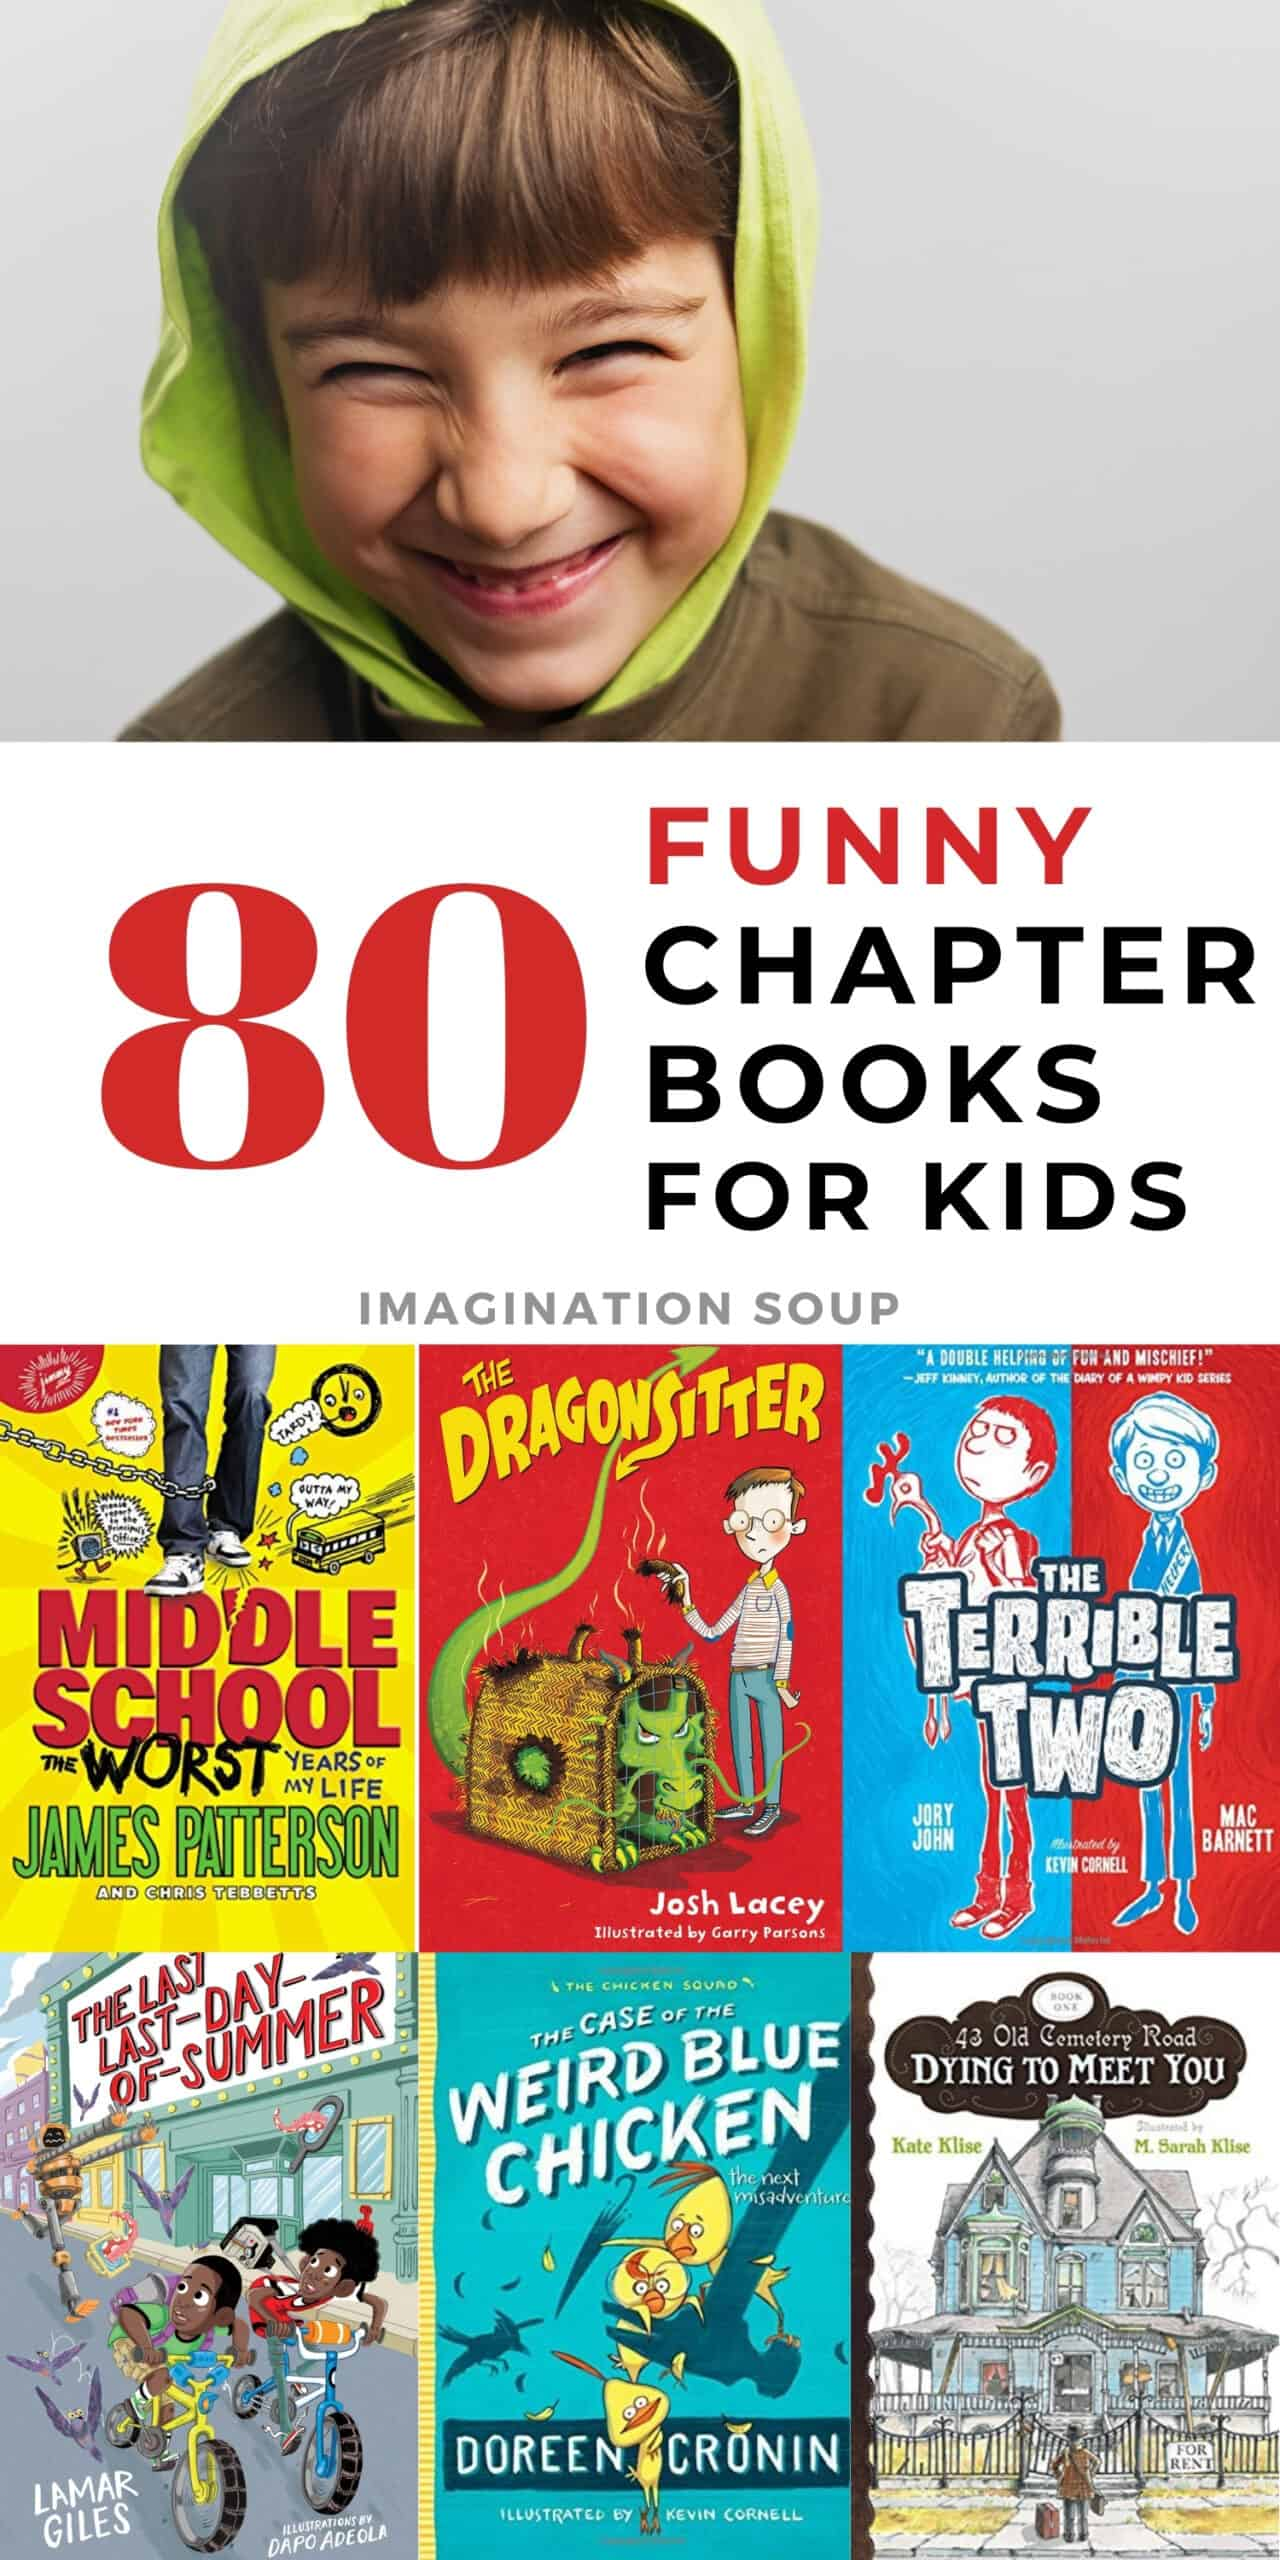 80 funny chapter books for kids (that they'll love to read)